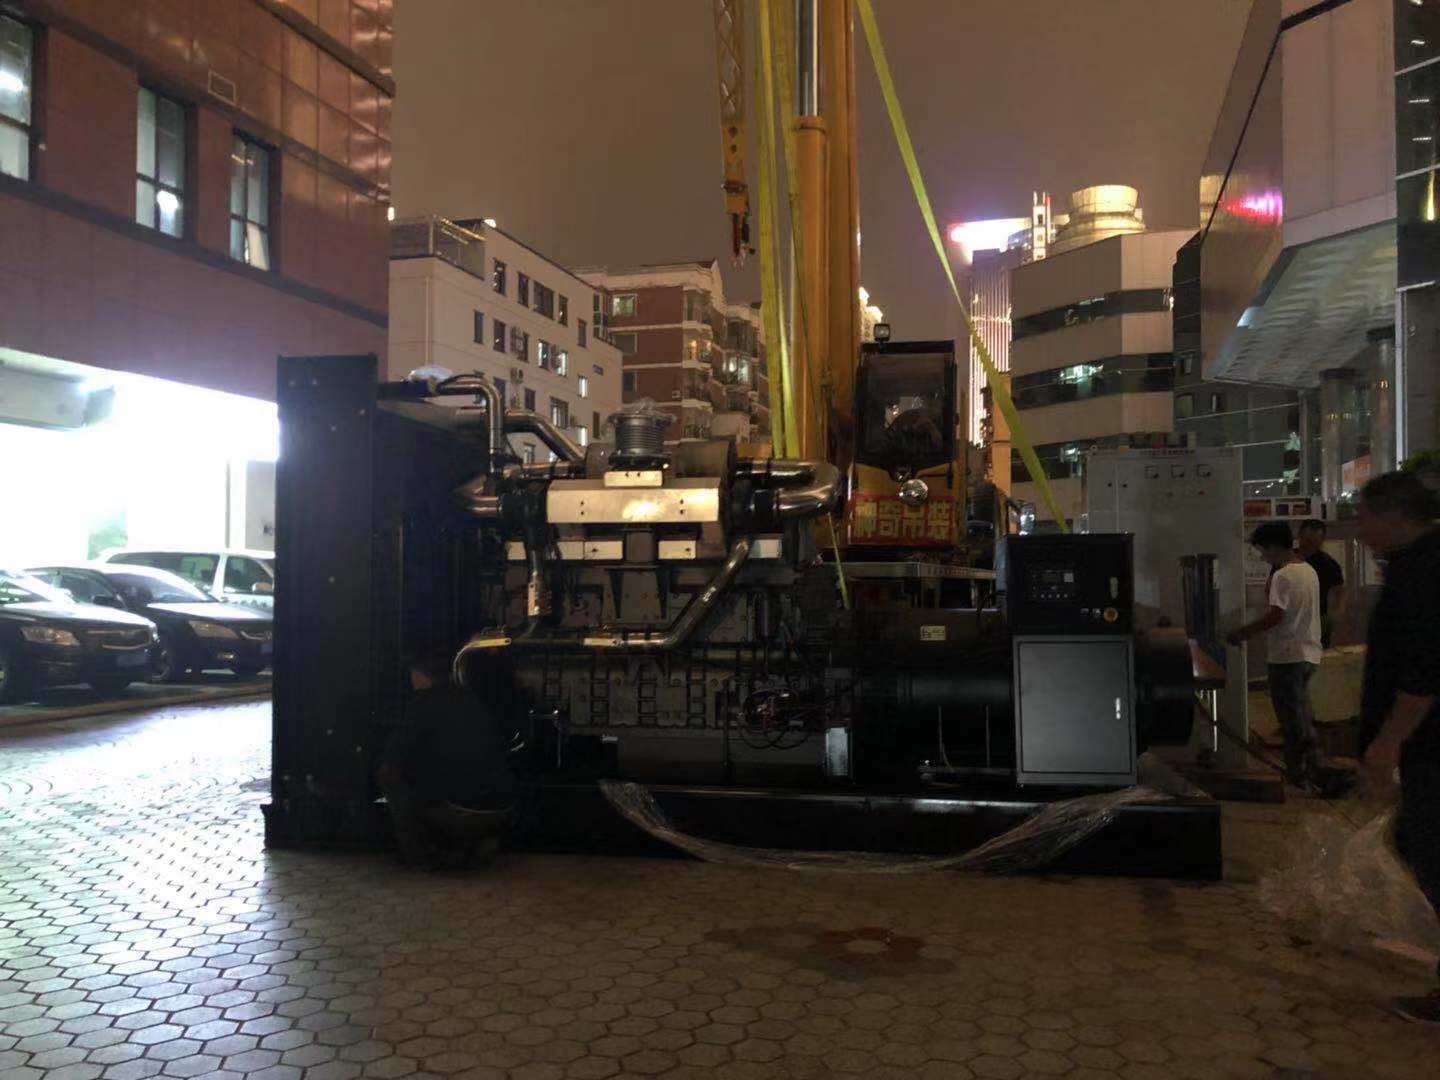 BA POWER MAKES A PLAN FOR INSTALLING Permanent Diesel Generators INSIDE A BIG BUILDING